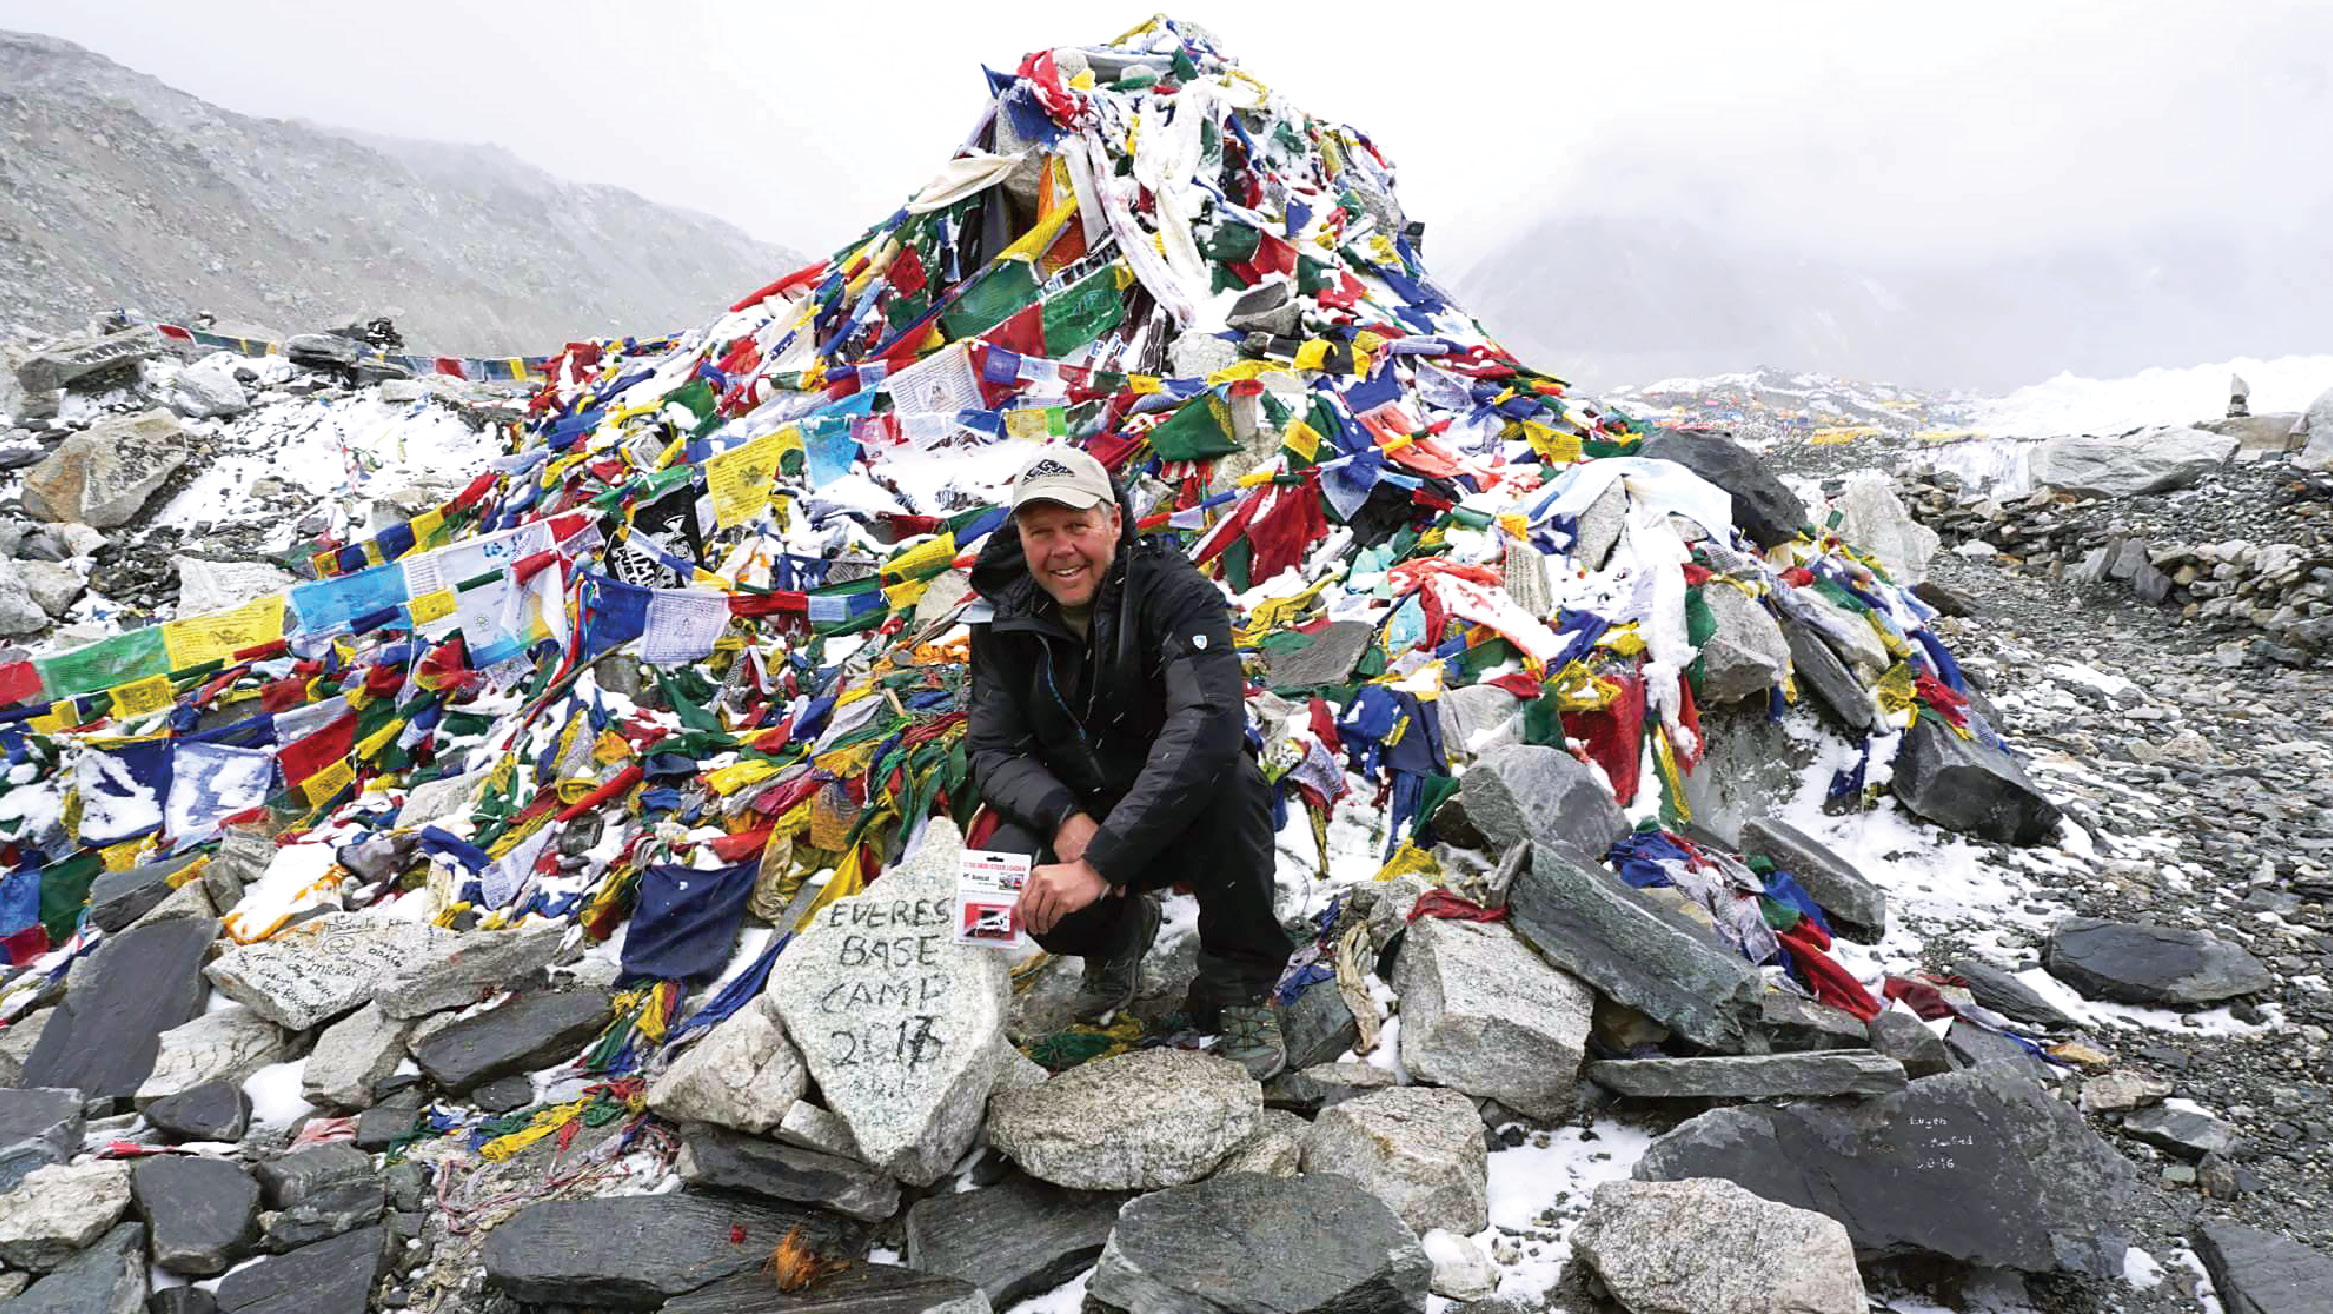 Deny Farnworth holds a Bobcat scale model loader at Base Camp on Mt. Everest